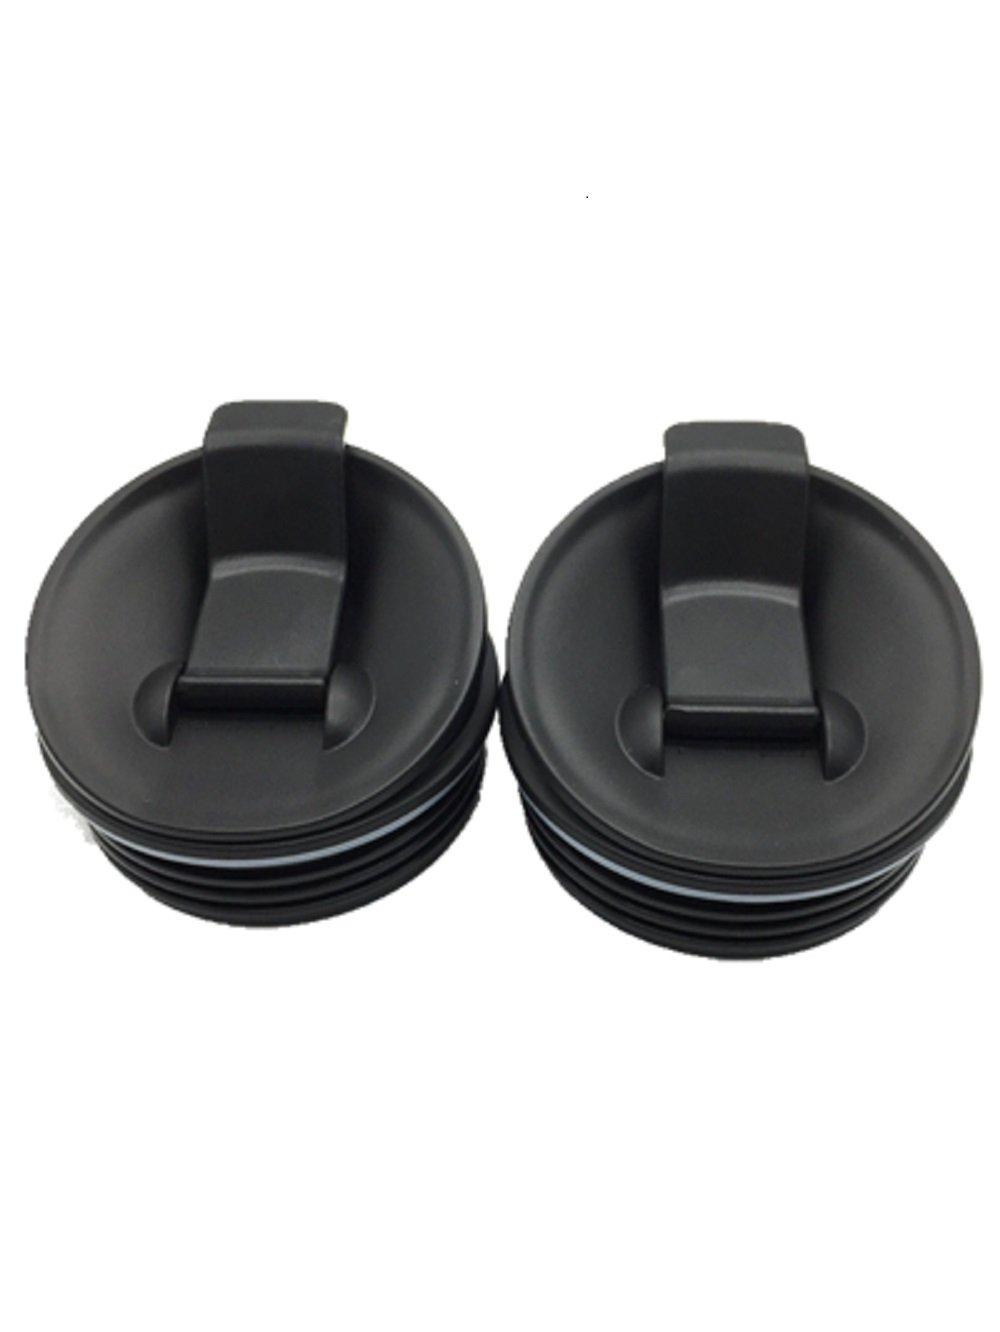 Sduck 2x Sip Seal Lids Replacement Parts for Nutri Ninja BL770 BL780 BL810 BL820 BL830 BL660 BL663 BL771 BL773 Blender (NOT For any other Ninja series)